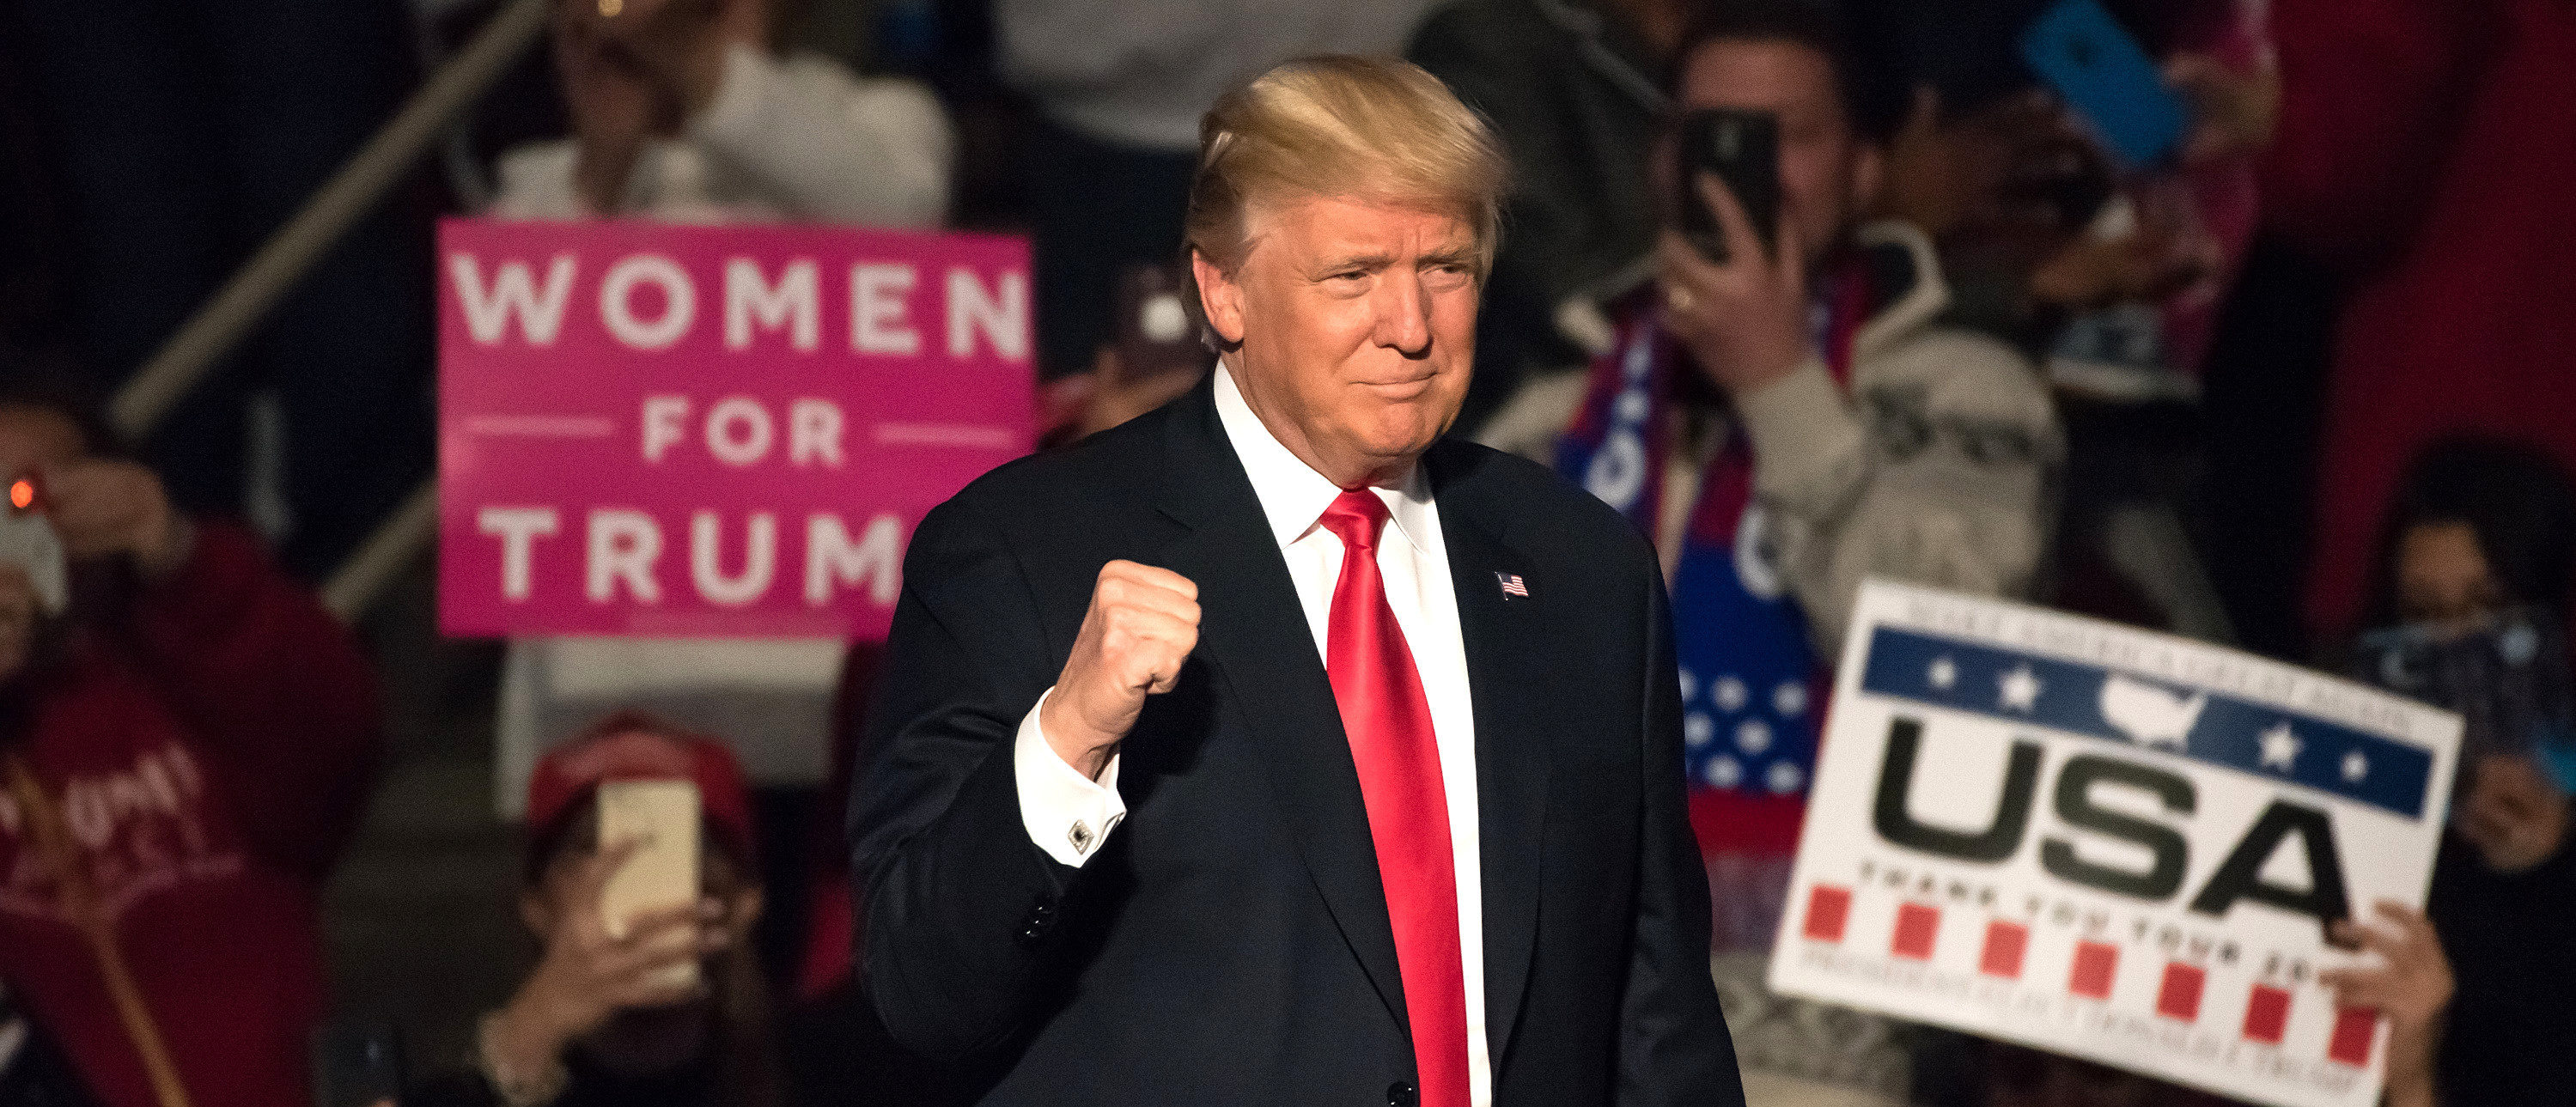 """HERSHEY, PA - DECEMBER 15, 2016: President-Elect Donald Trump gives a """"Fist Pump"""" as the confidently arrives on stage to deliver a speech at the """"Thank You"""" Tour rally at the Giant Center. Evan El-Amin/Shutterstock"""